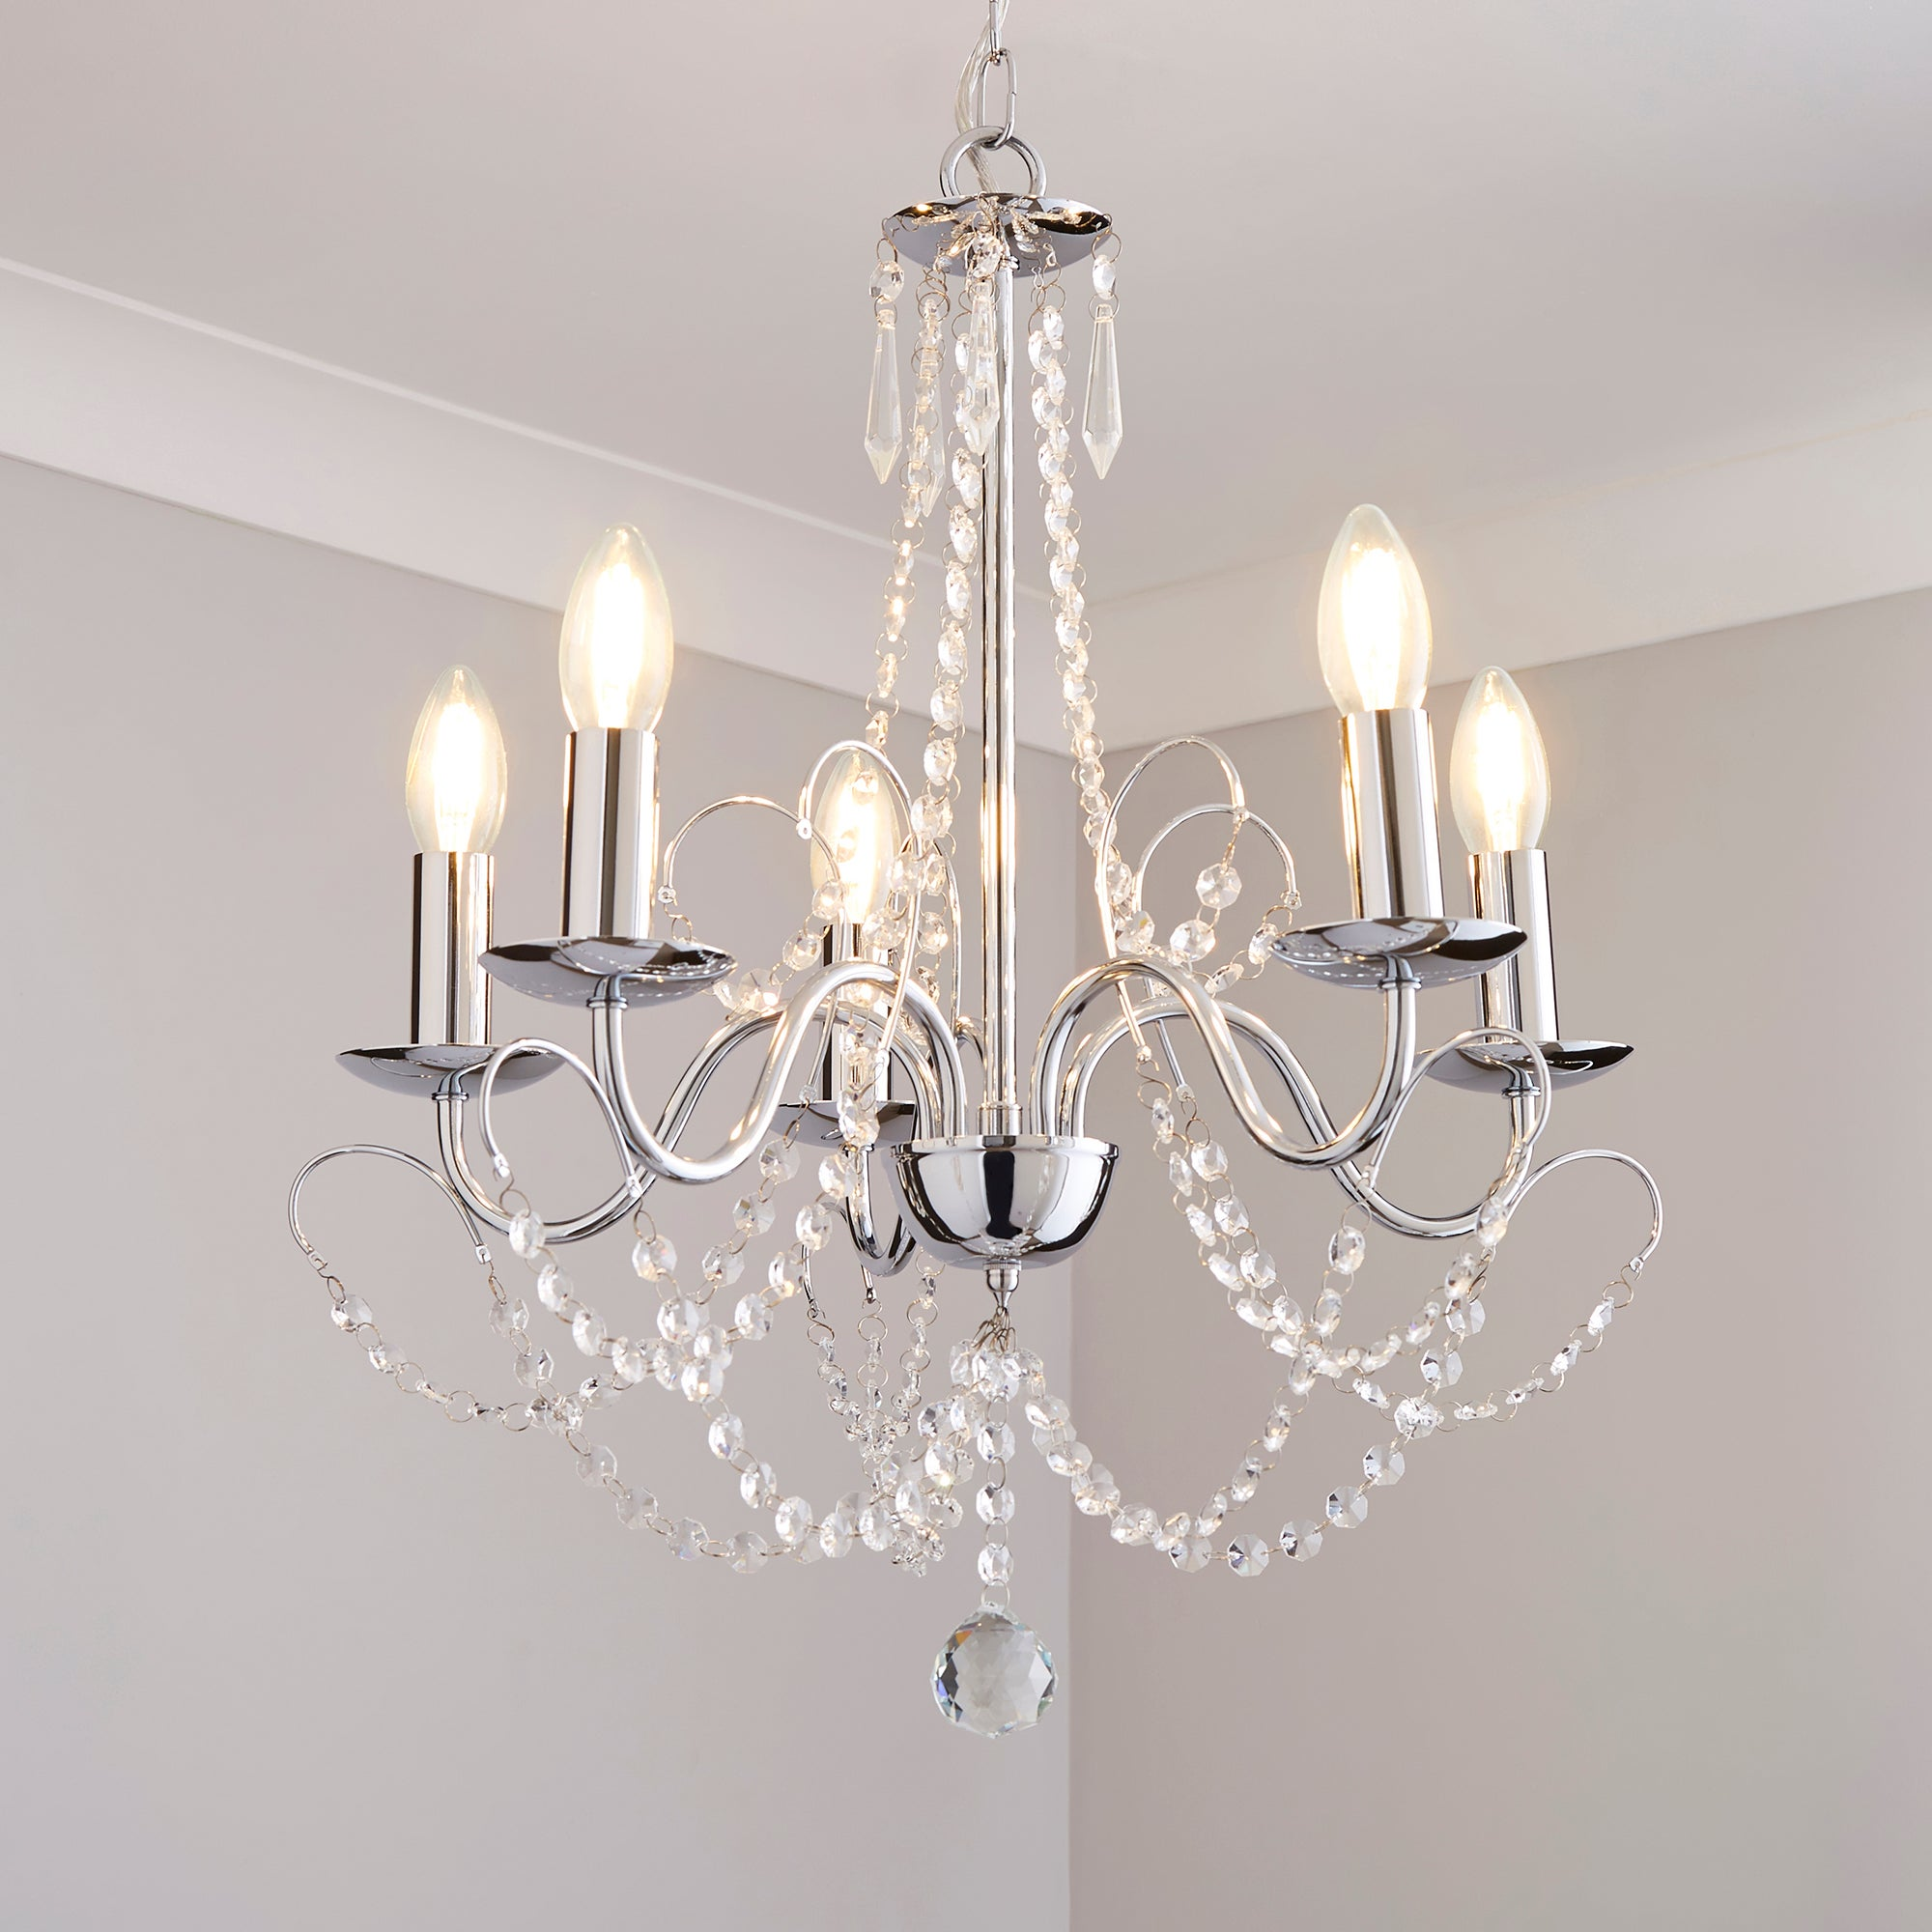 Gatsby 5 Light Fitting